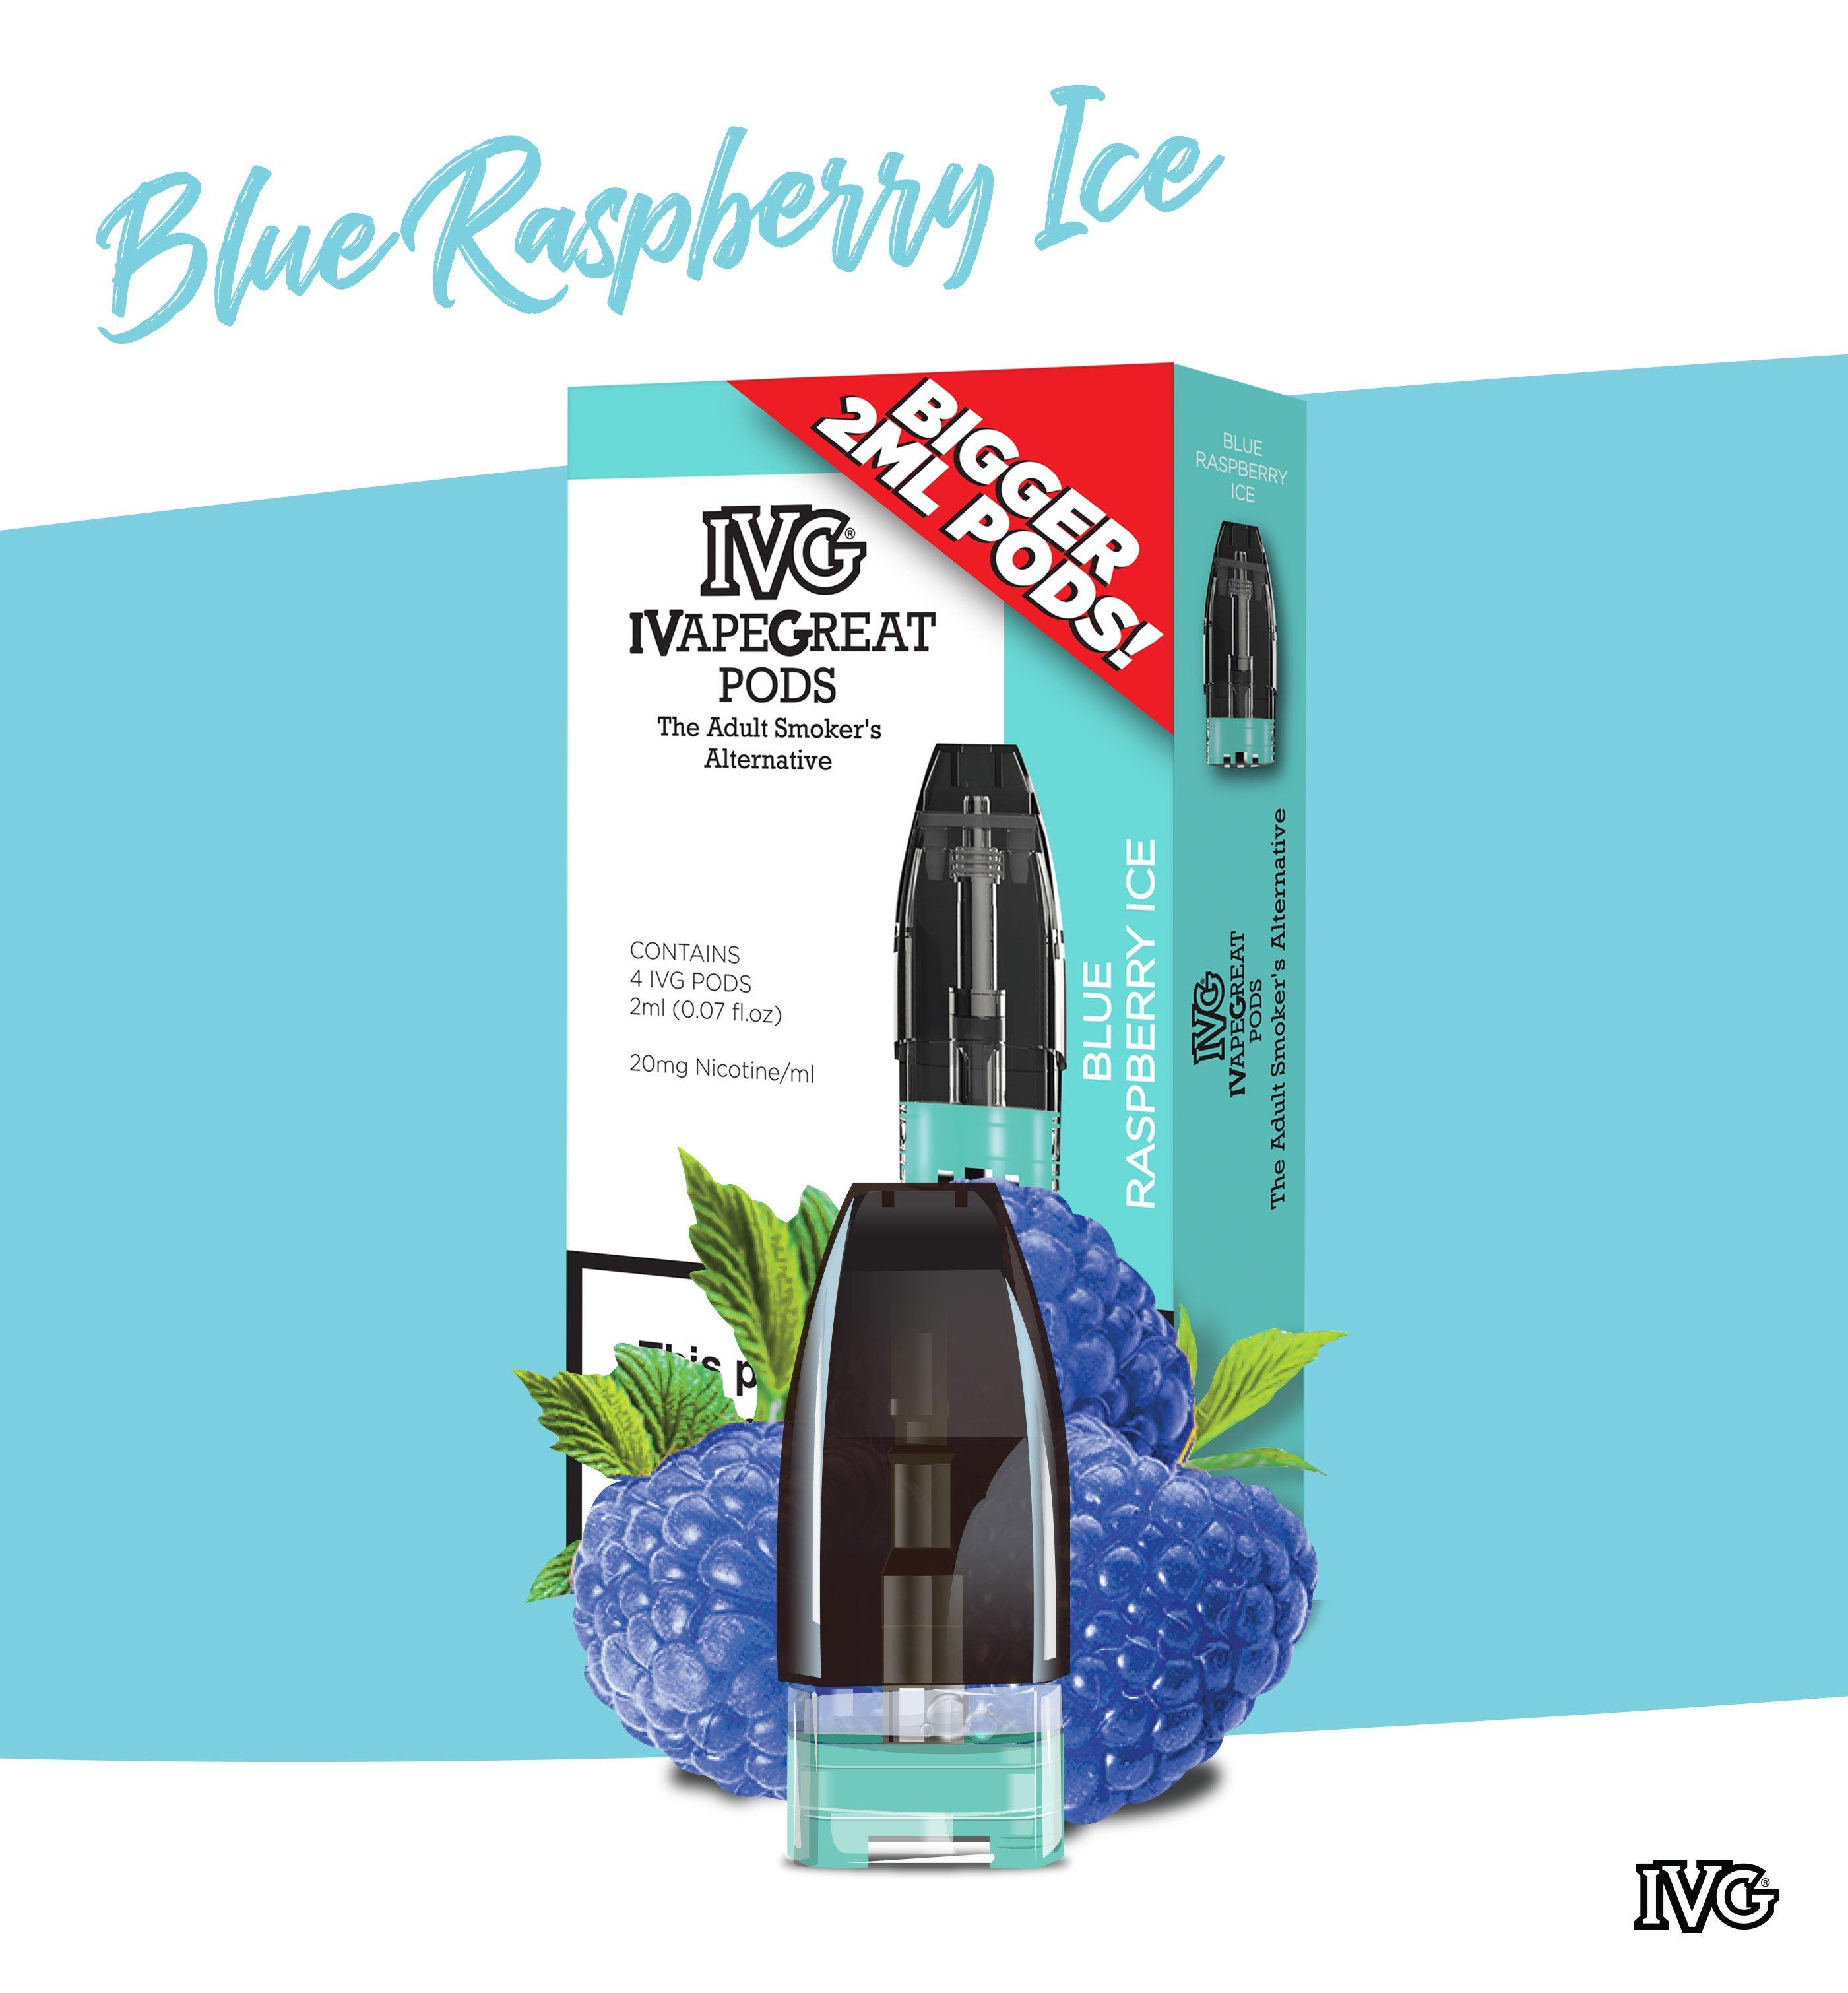 IVG vape pod 4 pack blue raspberry ice flavour